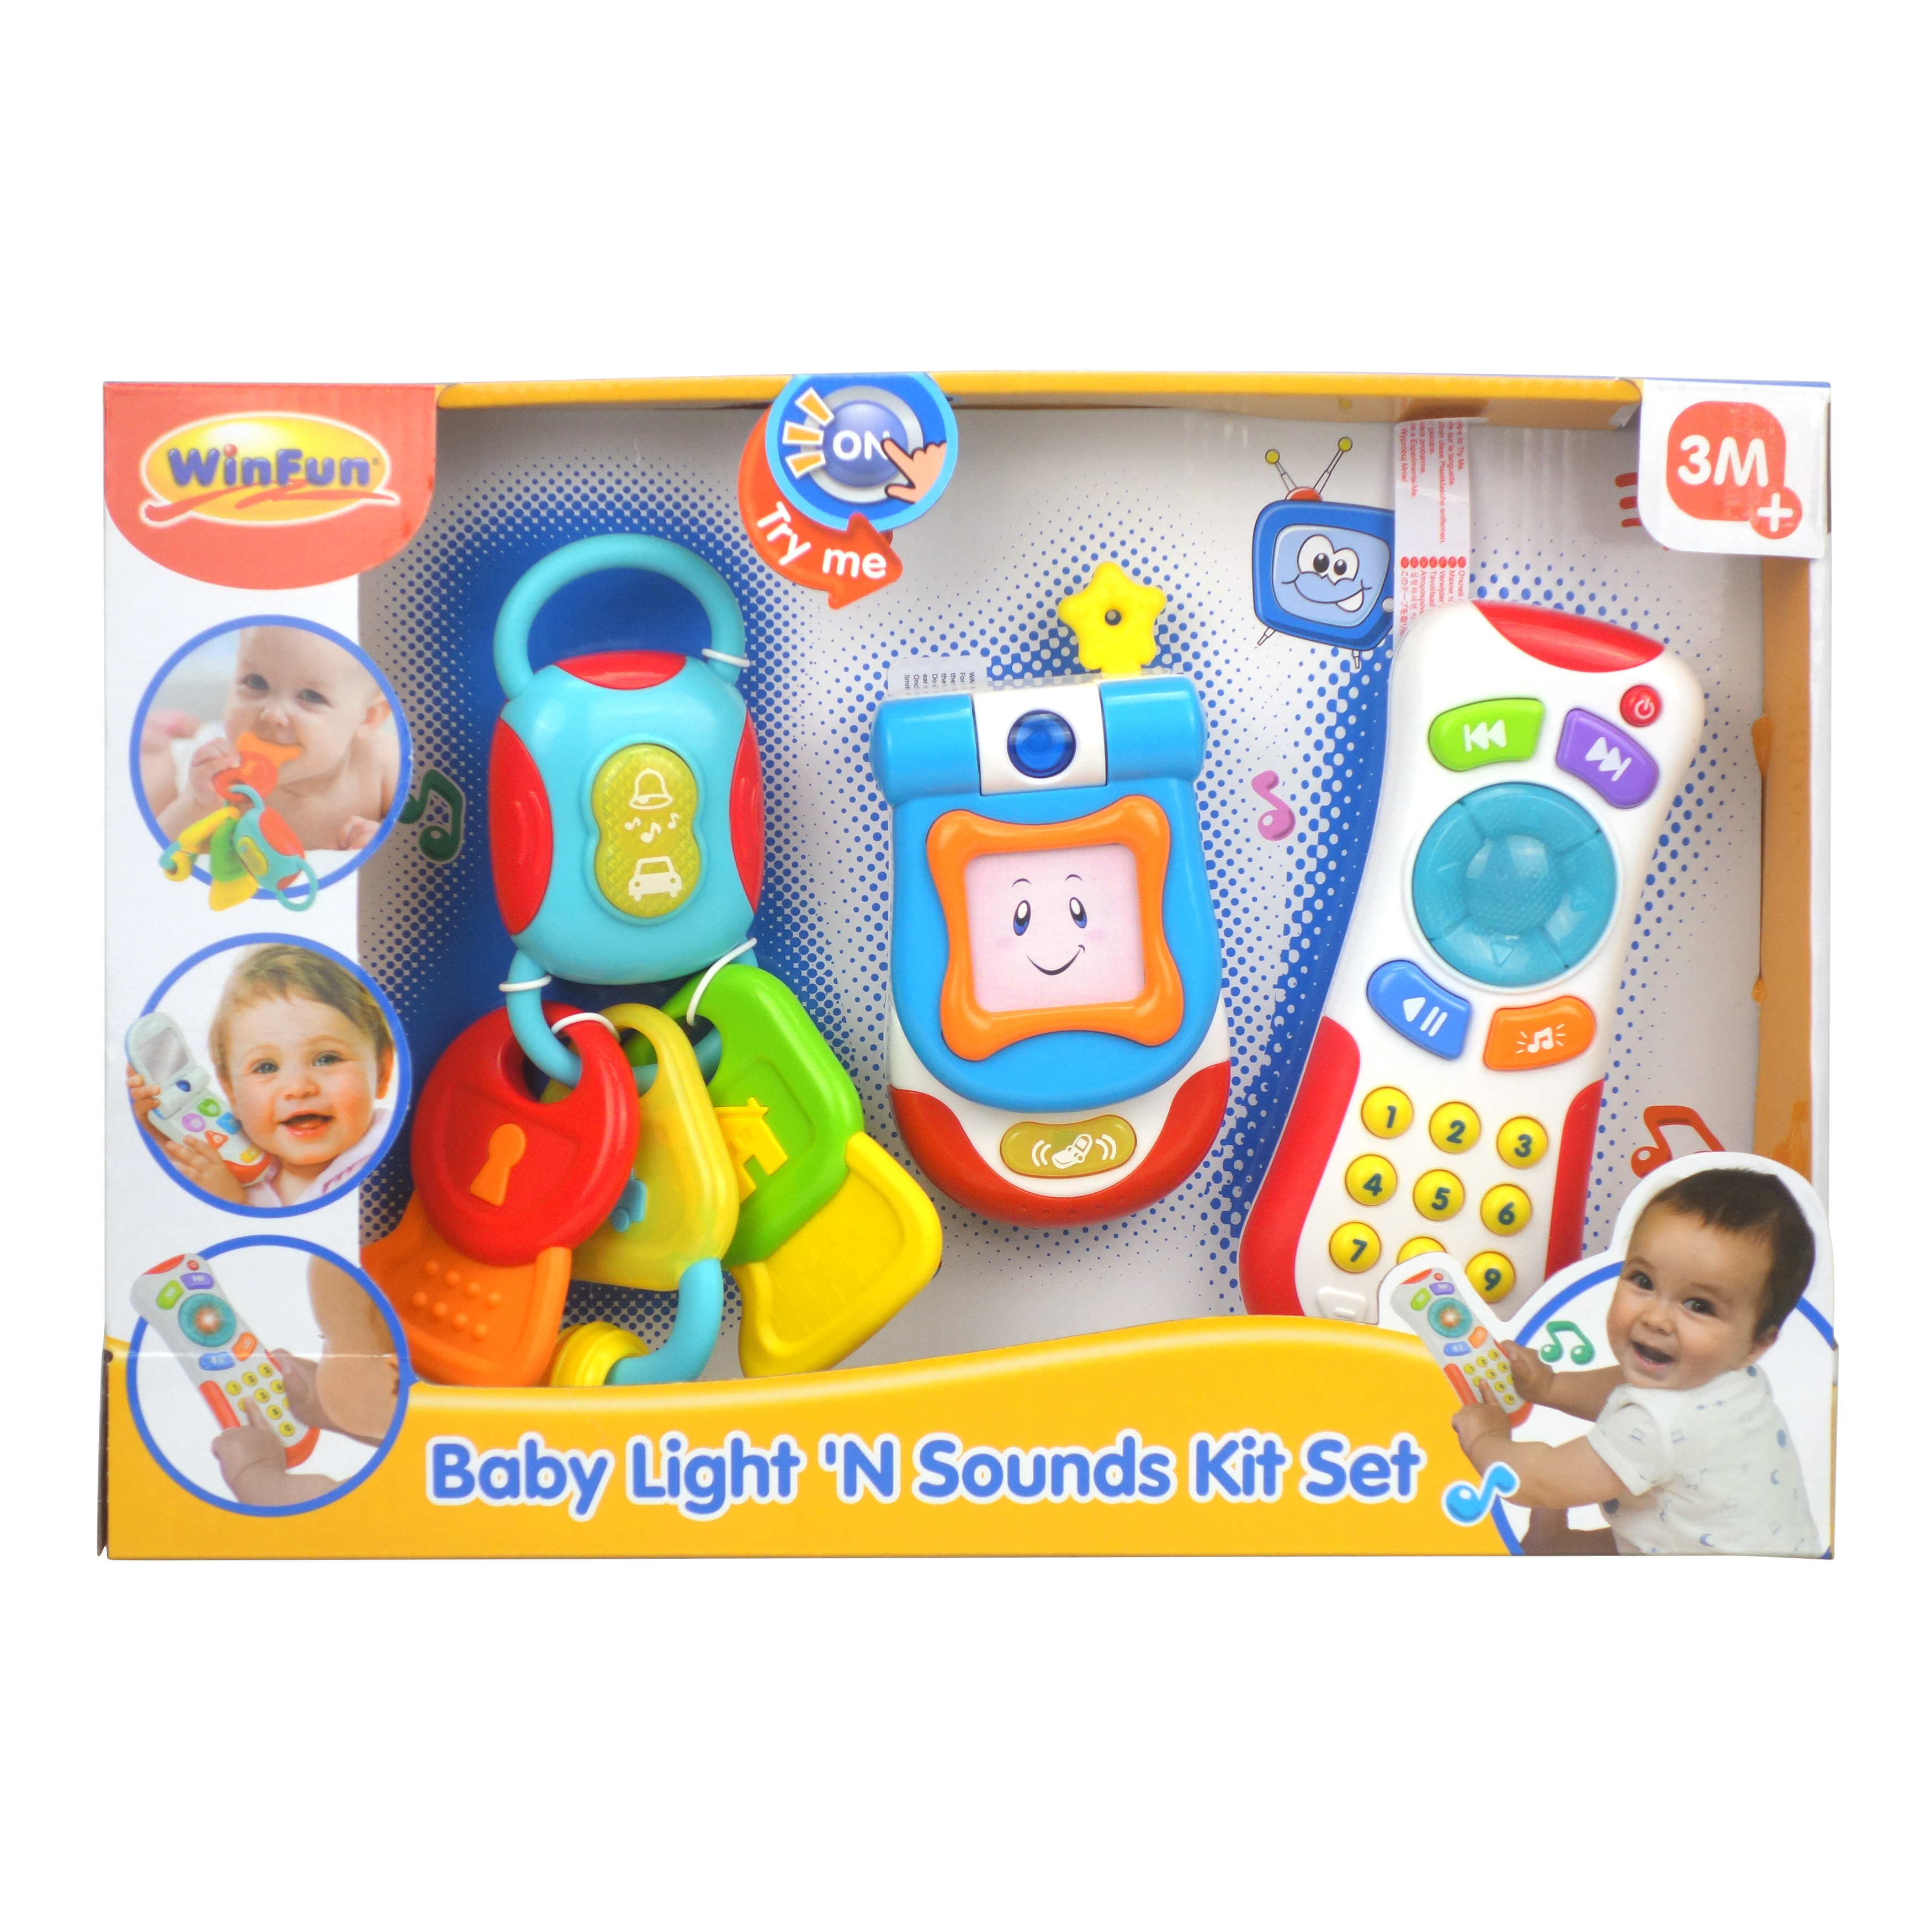 Light 'N Sounds Remote Control and Keys